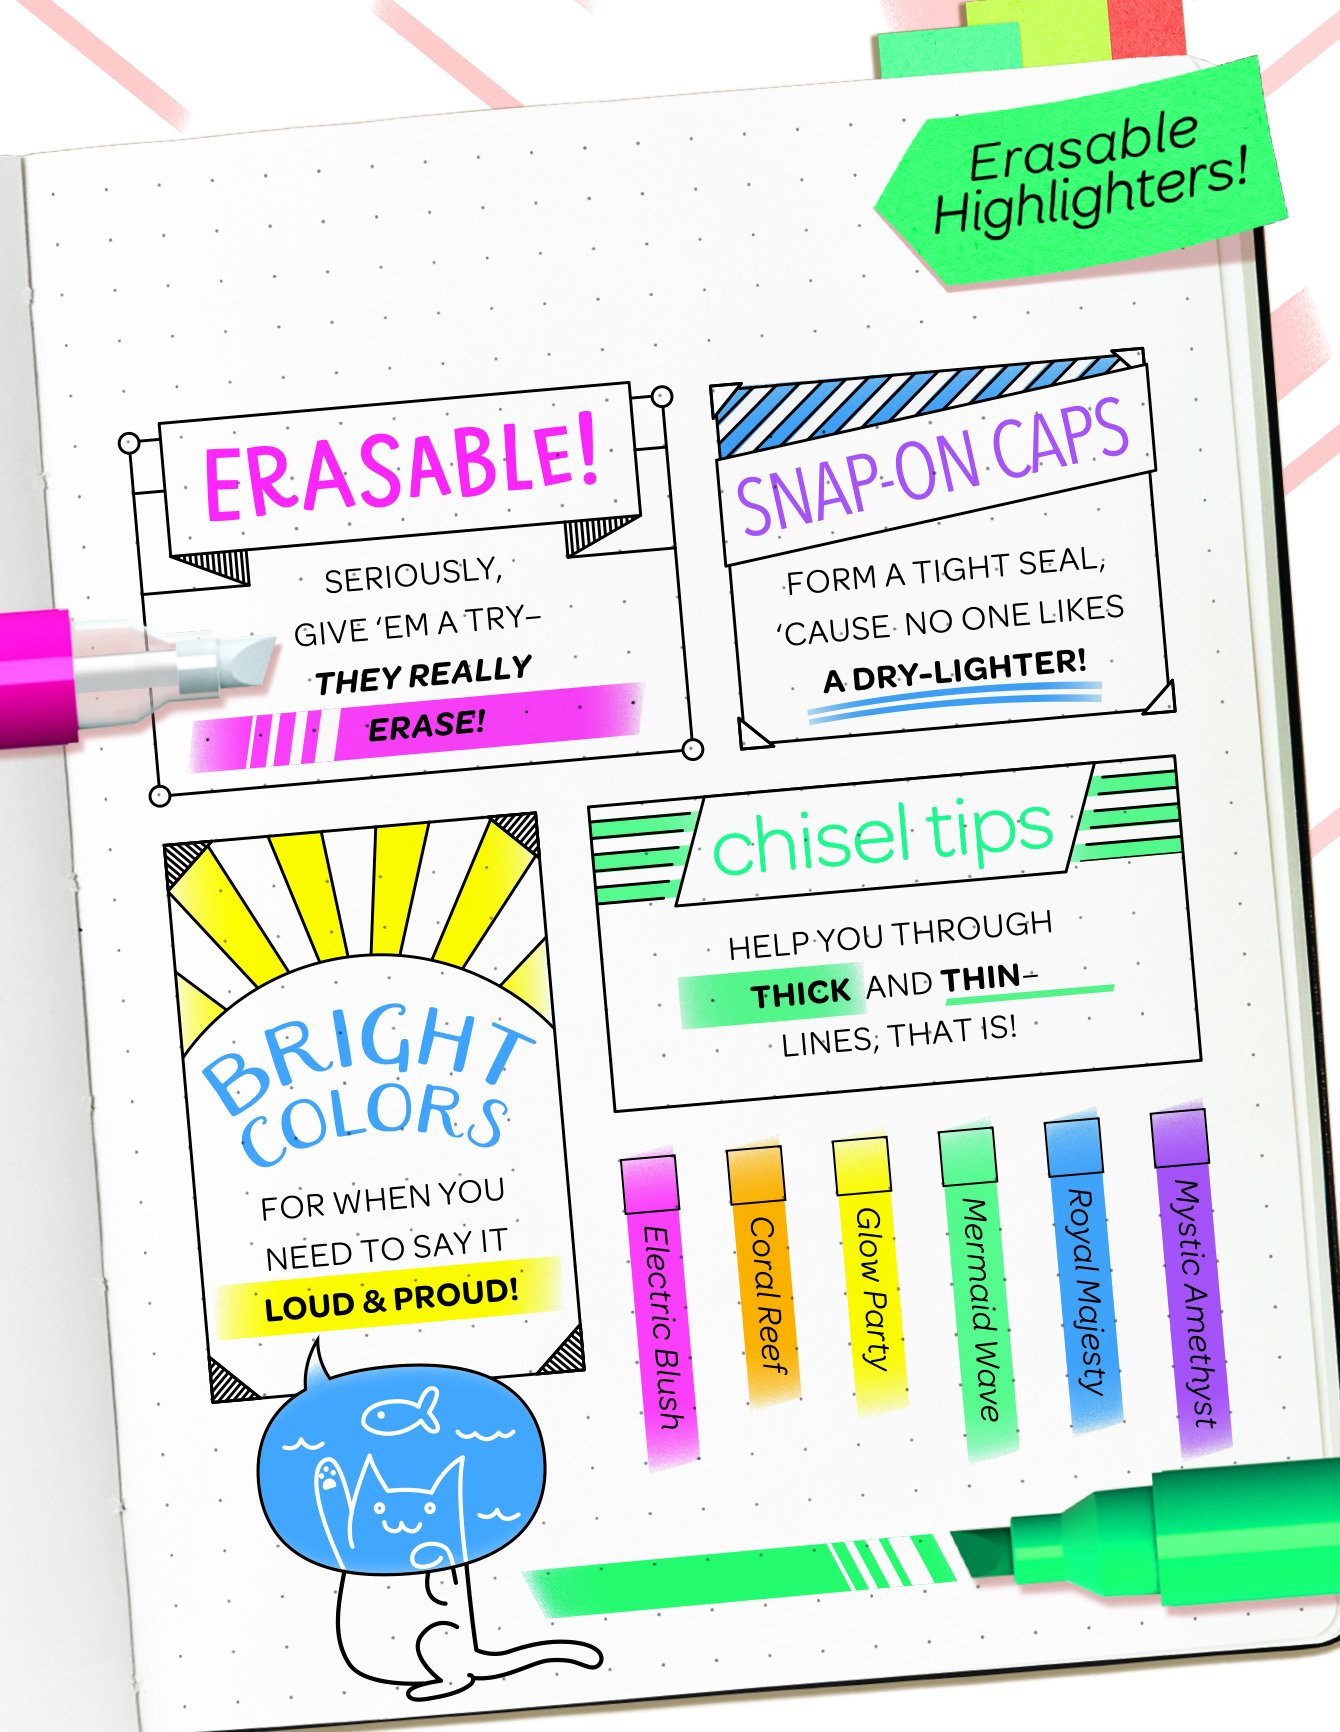 Crayola Take Note! Erasable Highlighters, Bullet Journal & School Supplies, 18Count, Gift by Crayola (Image #5)